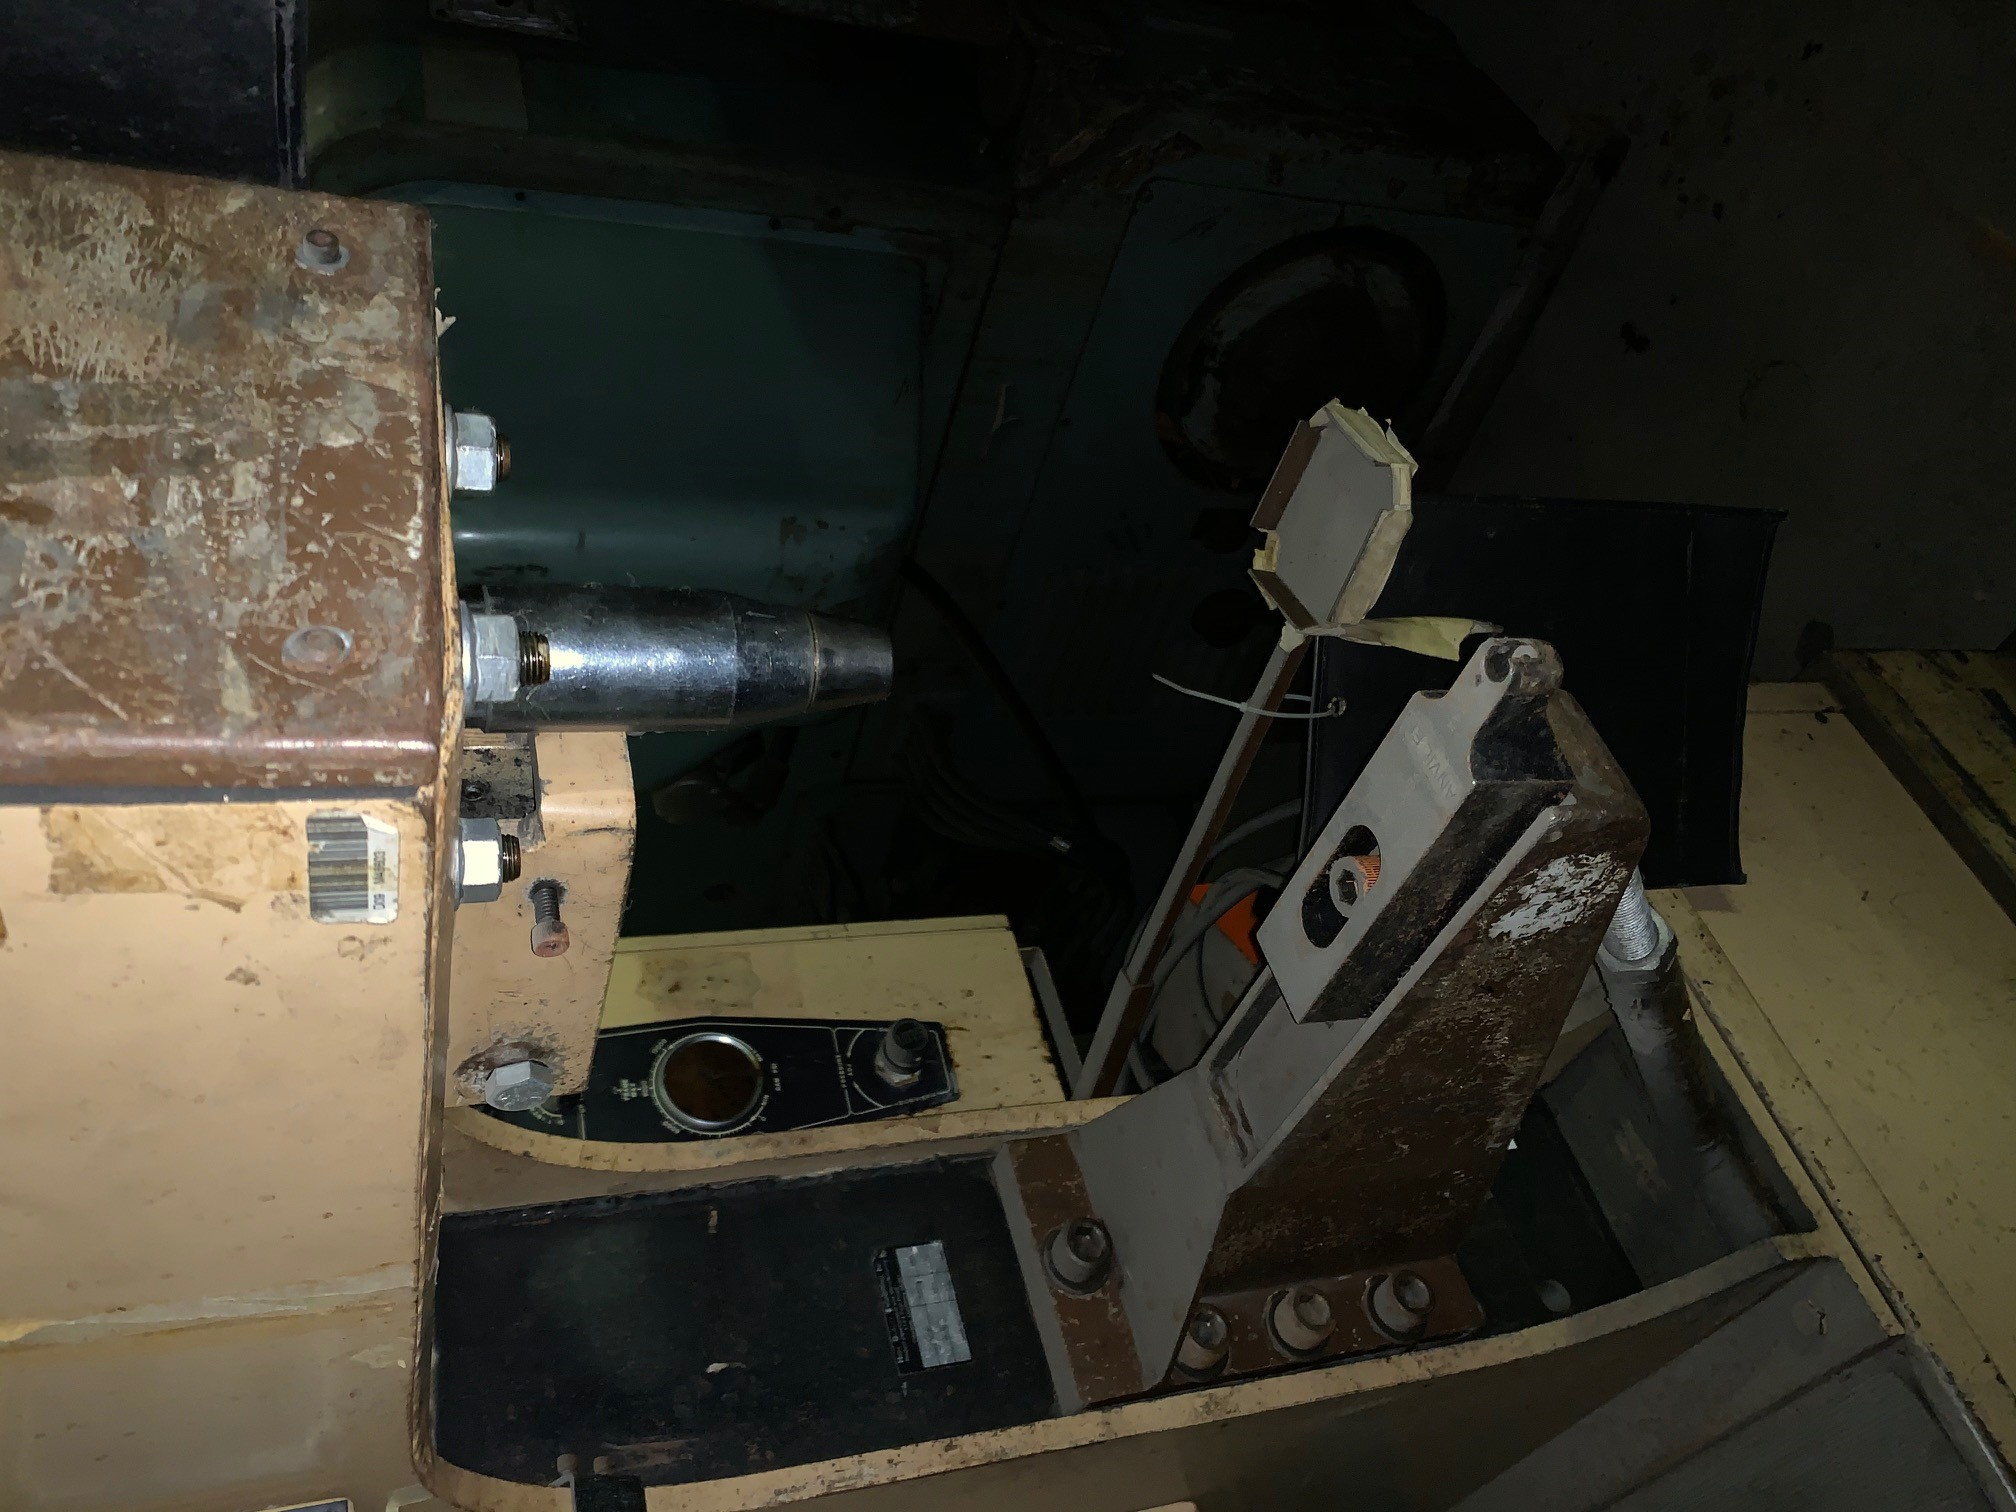 1 - PREOWNED HAEGER HARDWARE INSERTION PRESS, <br>MODEL #: HP6-B, S/N: 552, YEAR: 1997